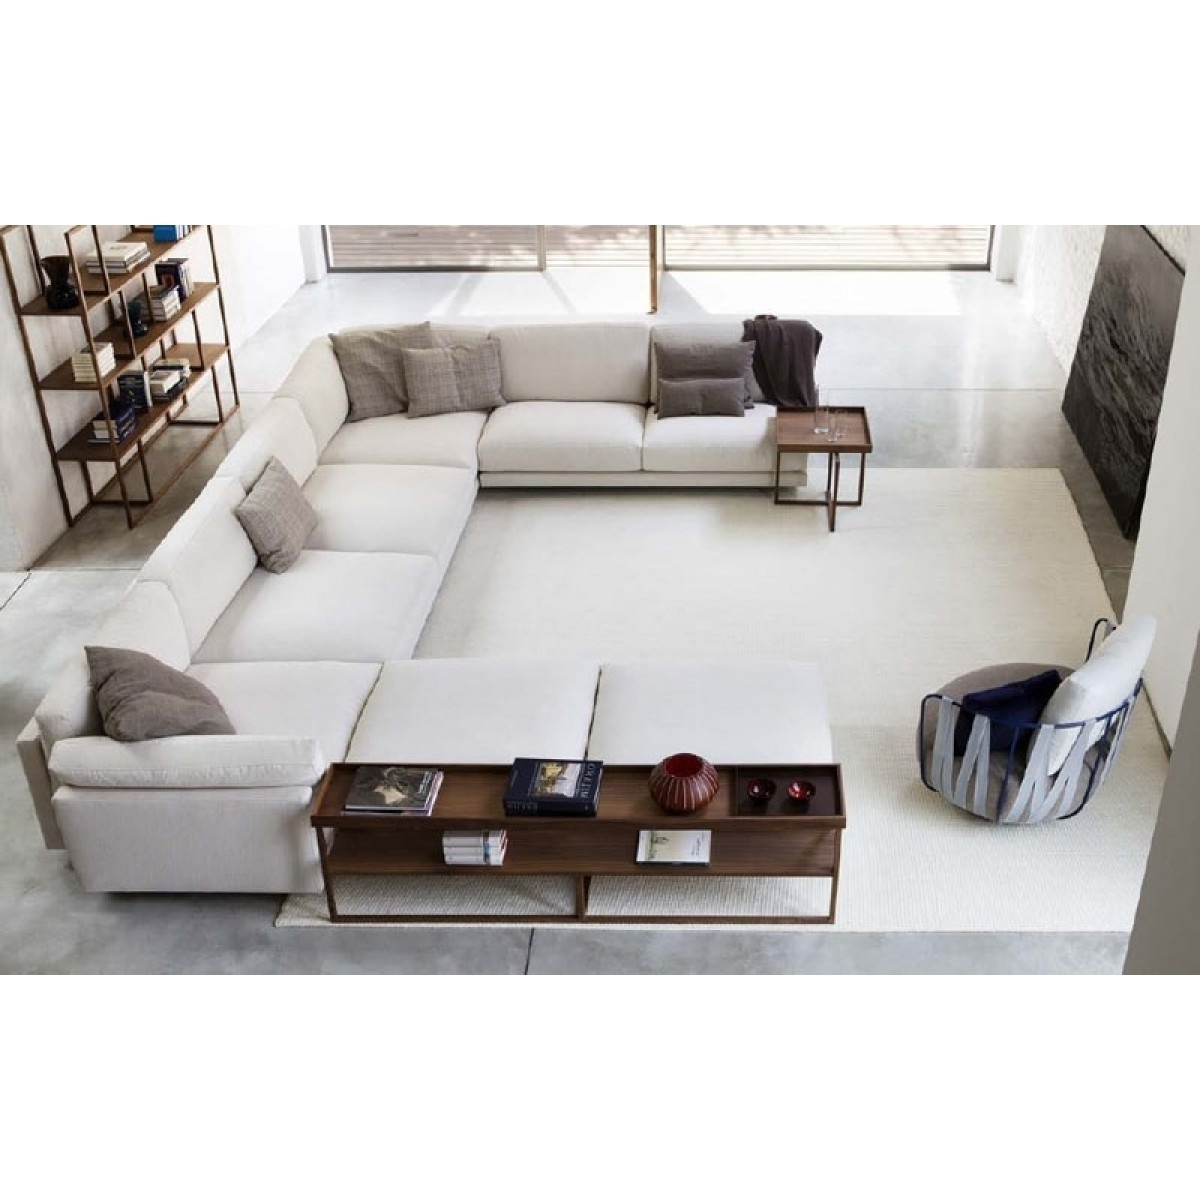 Sofa buy sofa love couch furniture extra long sectional sofa intended for current long modern